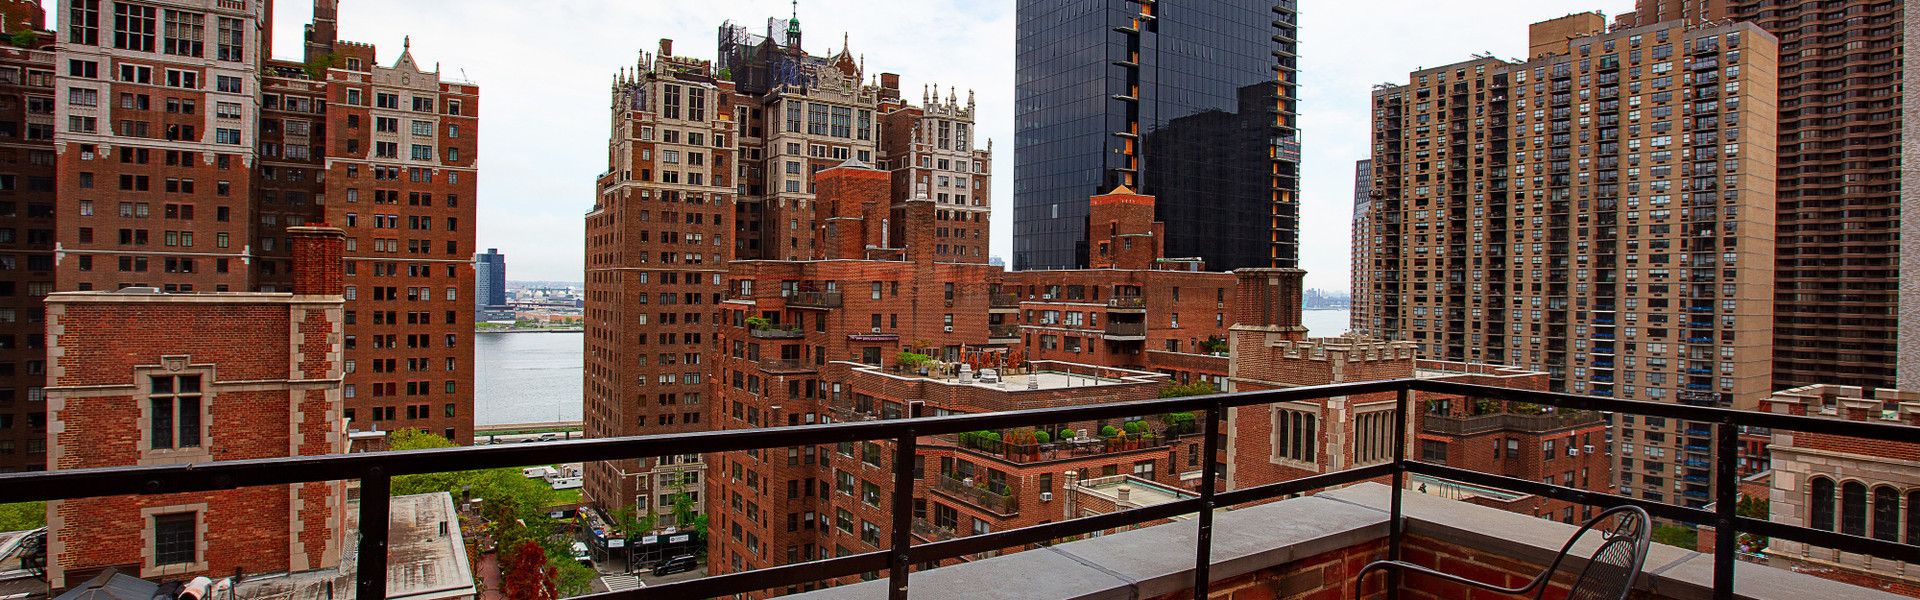 View From Hotel Rooms and Suites Midtown Manhattan NYC | Westgate New York City | New York Hotel Suites